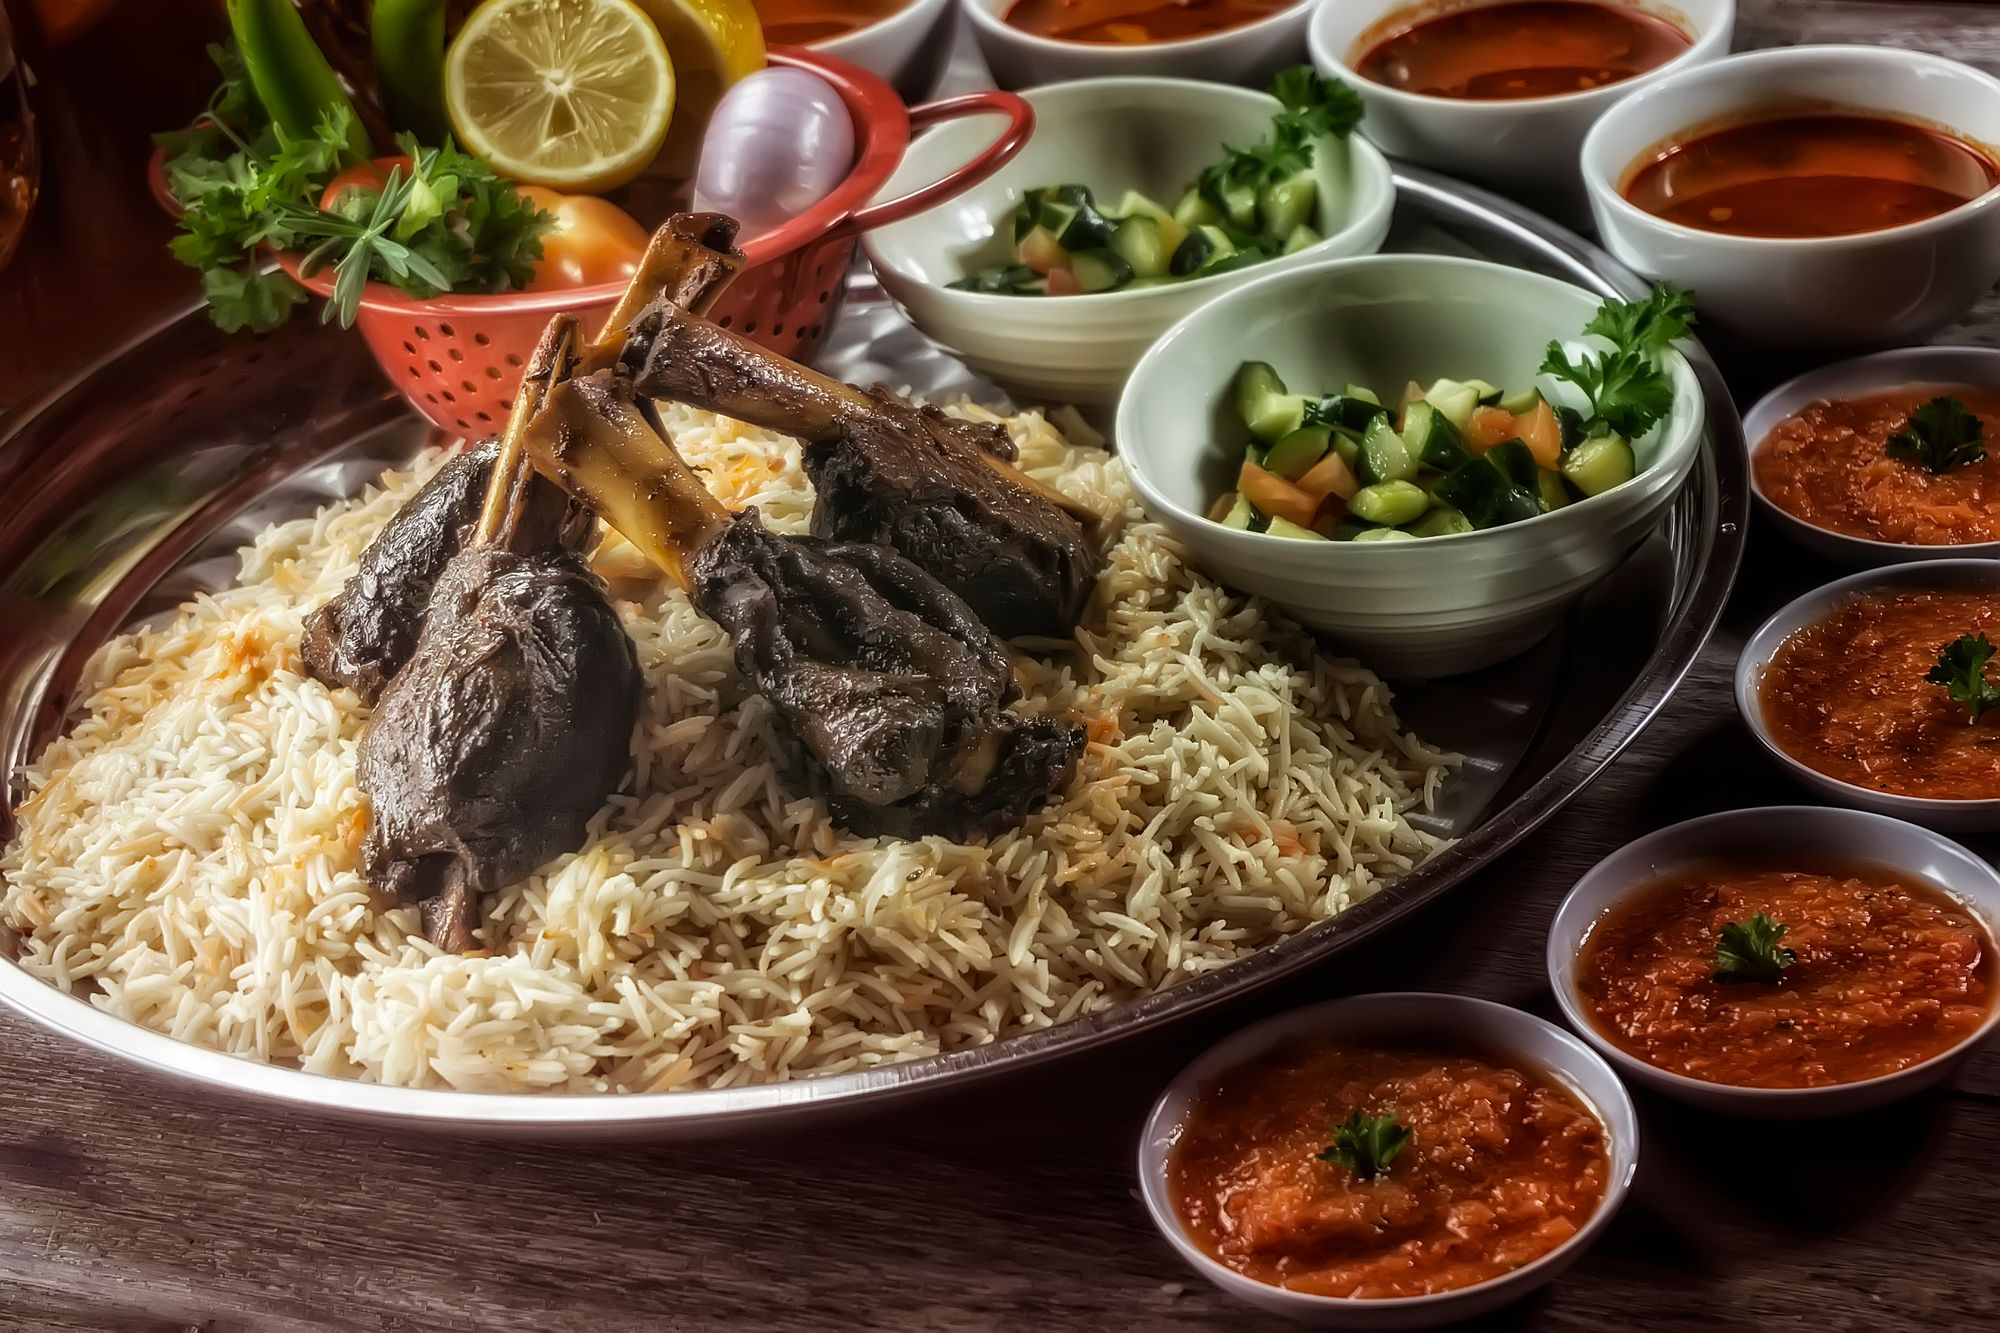 Delicious halal food in the UAE